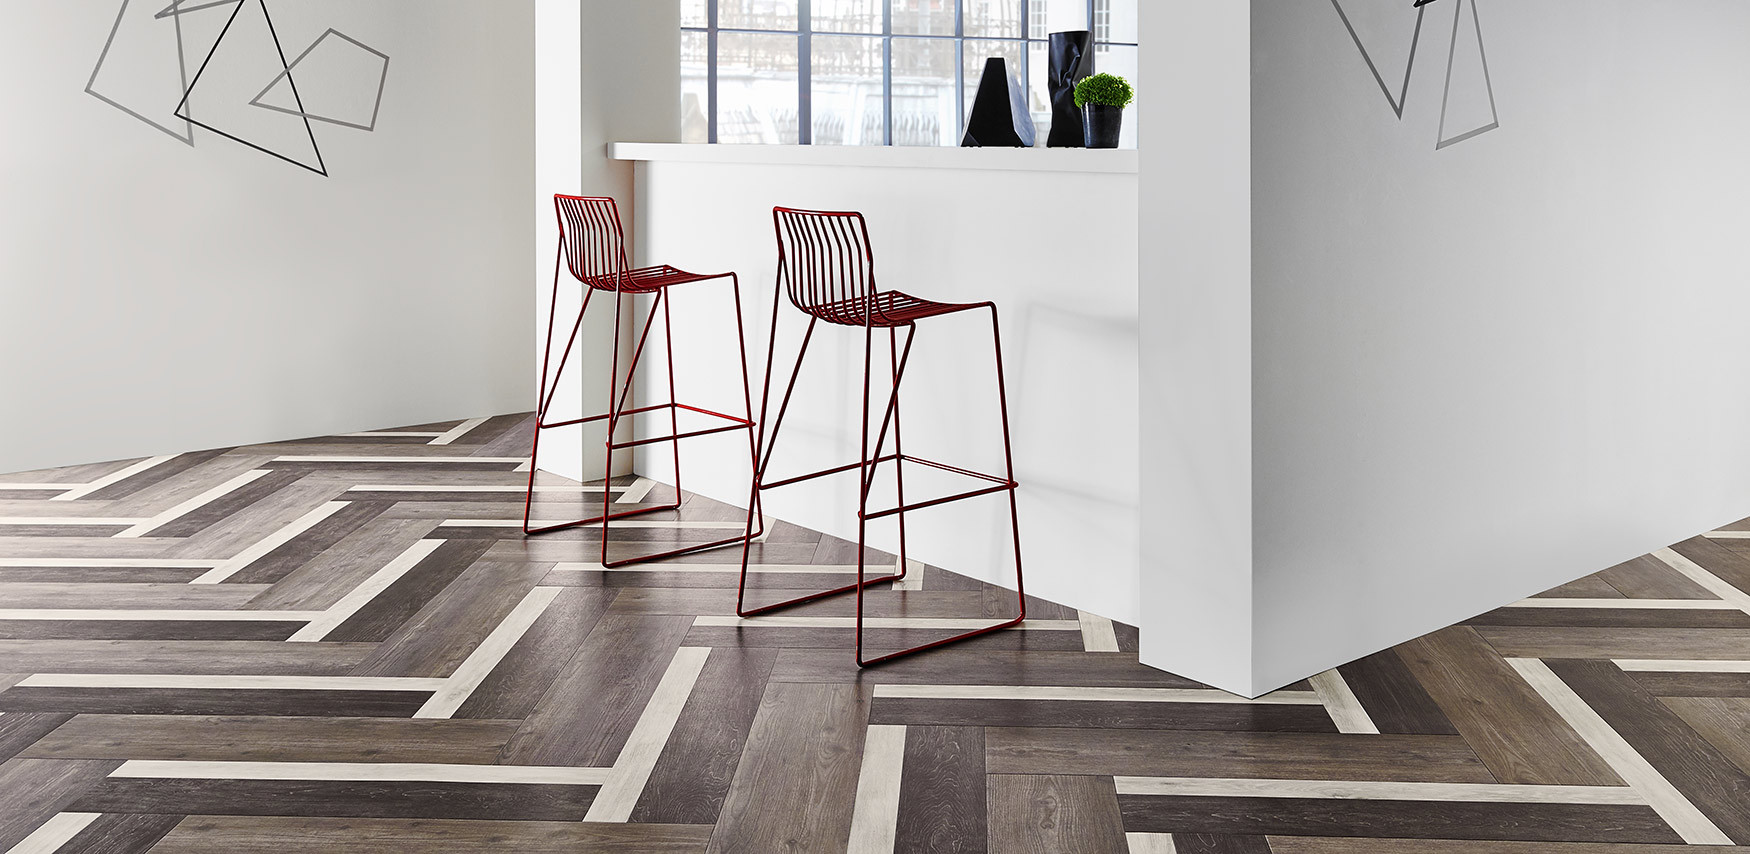 Tacoma Hardwood Floors Of Mannington Flooring Resilient Laminate Hardwood Luxury Vinyl Intended for Amtico Commercial